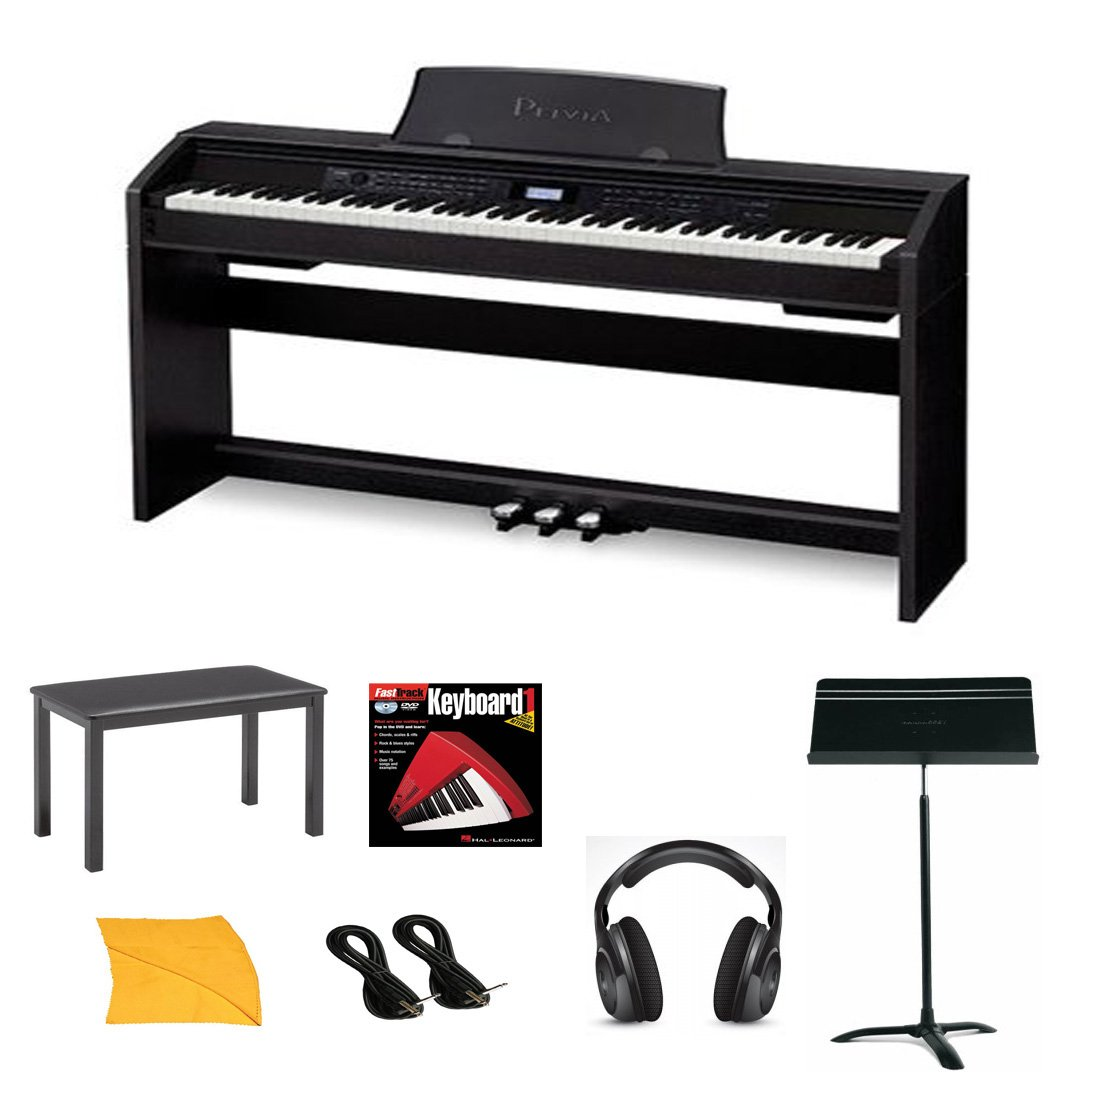 Casio PX780 Digital Piano Bundle With Casio CB7BK Furniture Style Bench, Standard Headphones, Hal Leonard Instructional Book, Quarter Inch Cables , Polishing Cloth & Heavy Duty Music Stand